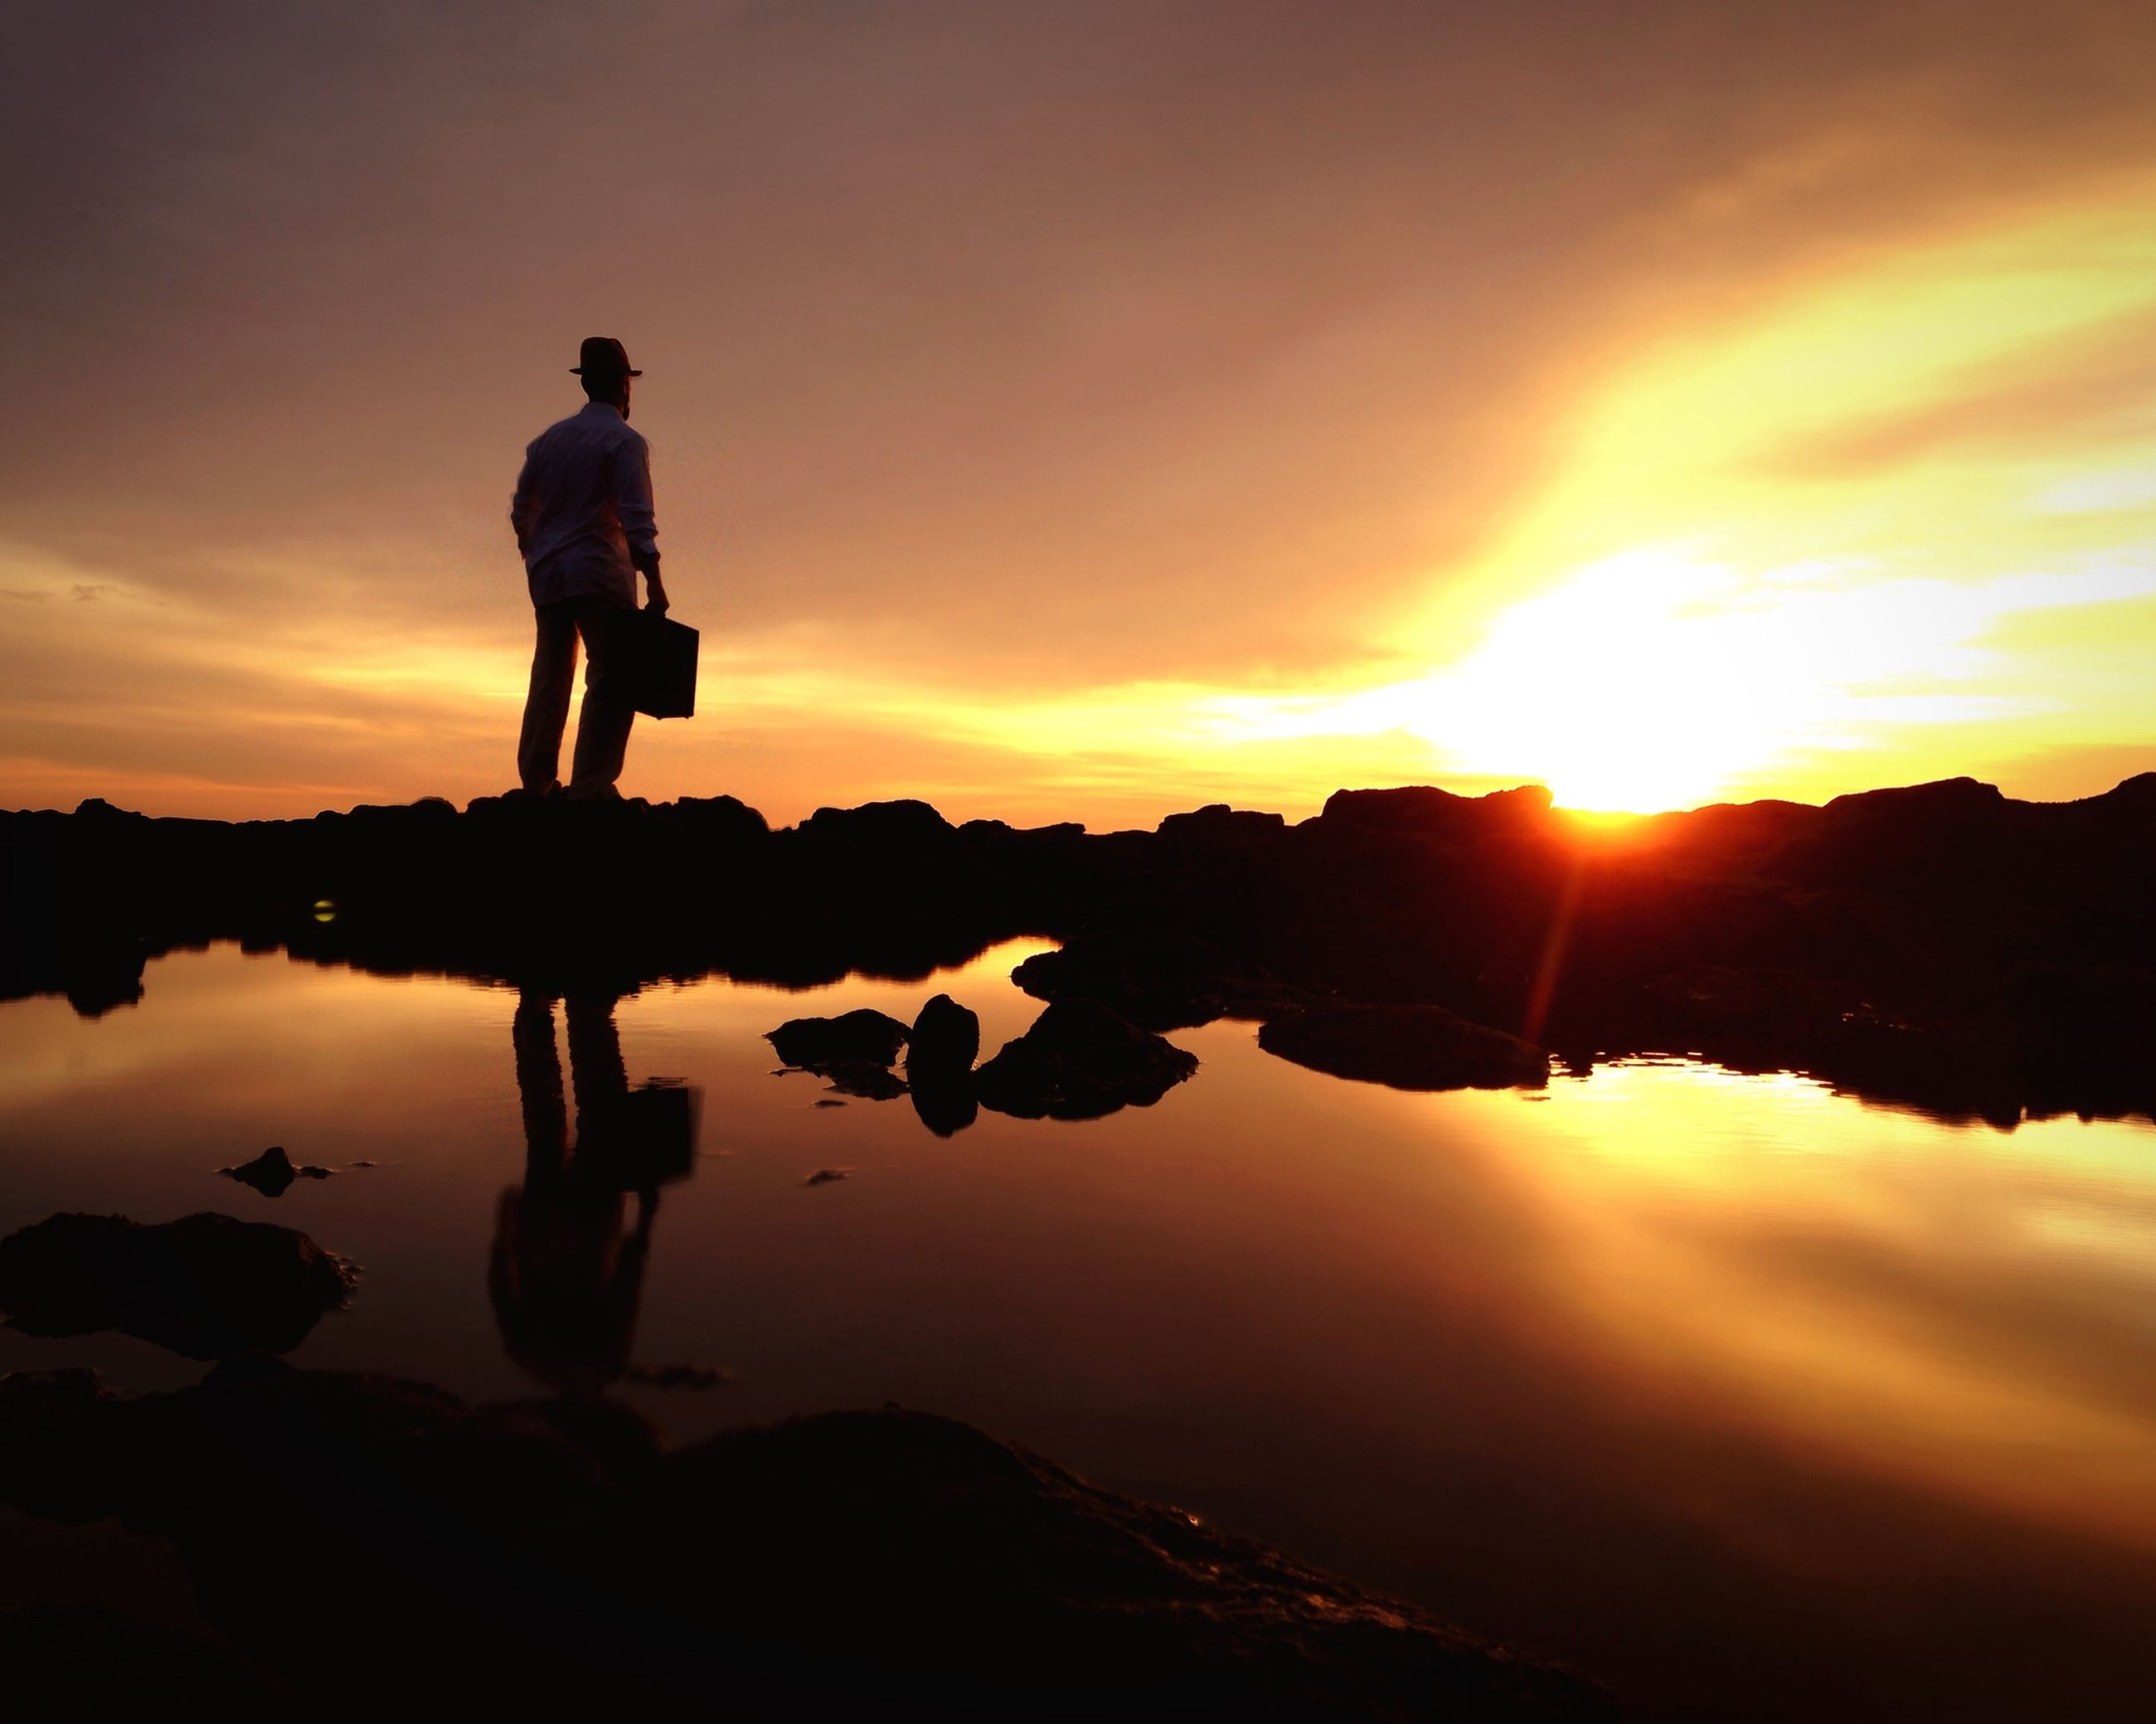 sunset, silhouette, sky, water, leisure activity, lifestyles, sun, scenics, beauty in nature, tranquil scene, men, orange color, tranquility, reflection, mountain, standing, full length, nature